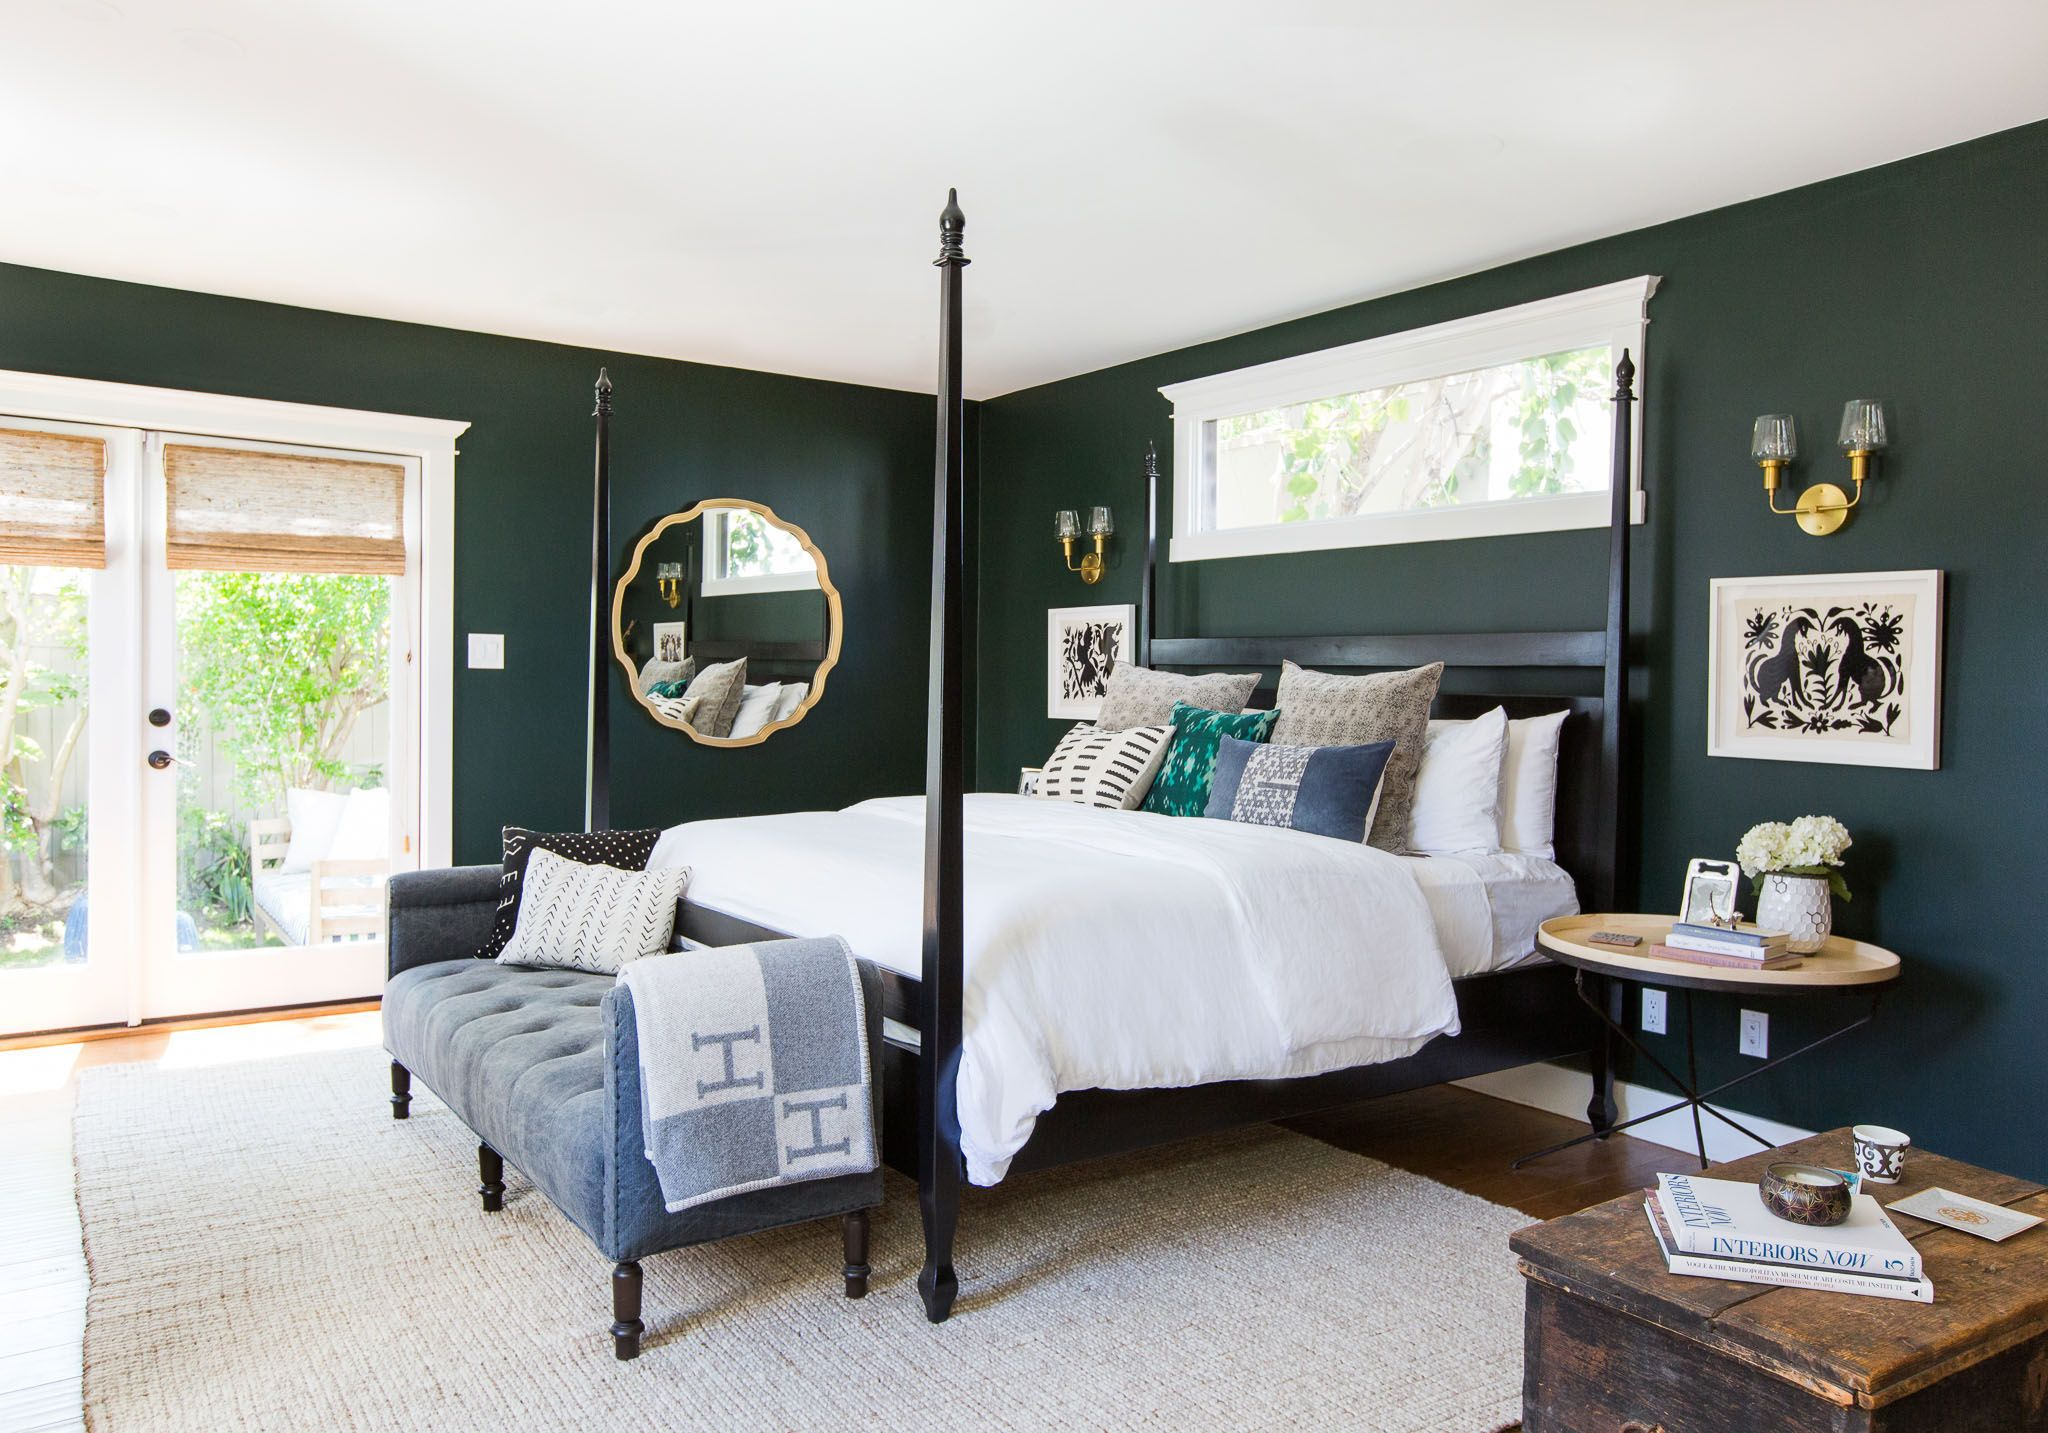 A Los Angeles Home That Exudes Comfortable Hotel Style (Elle Decor)